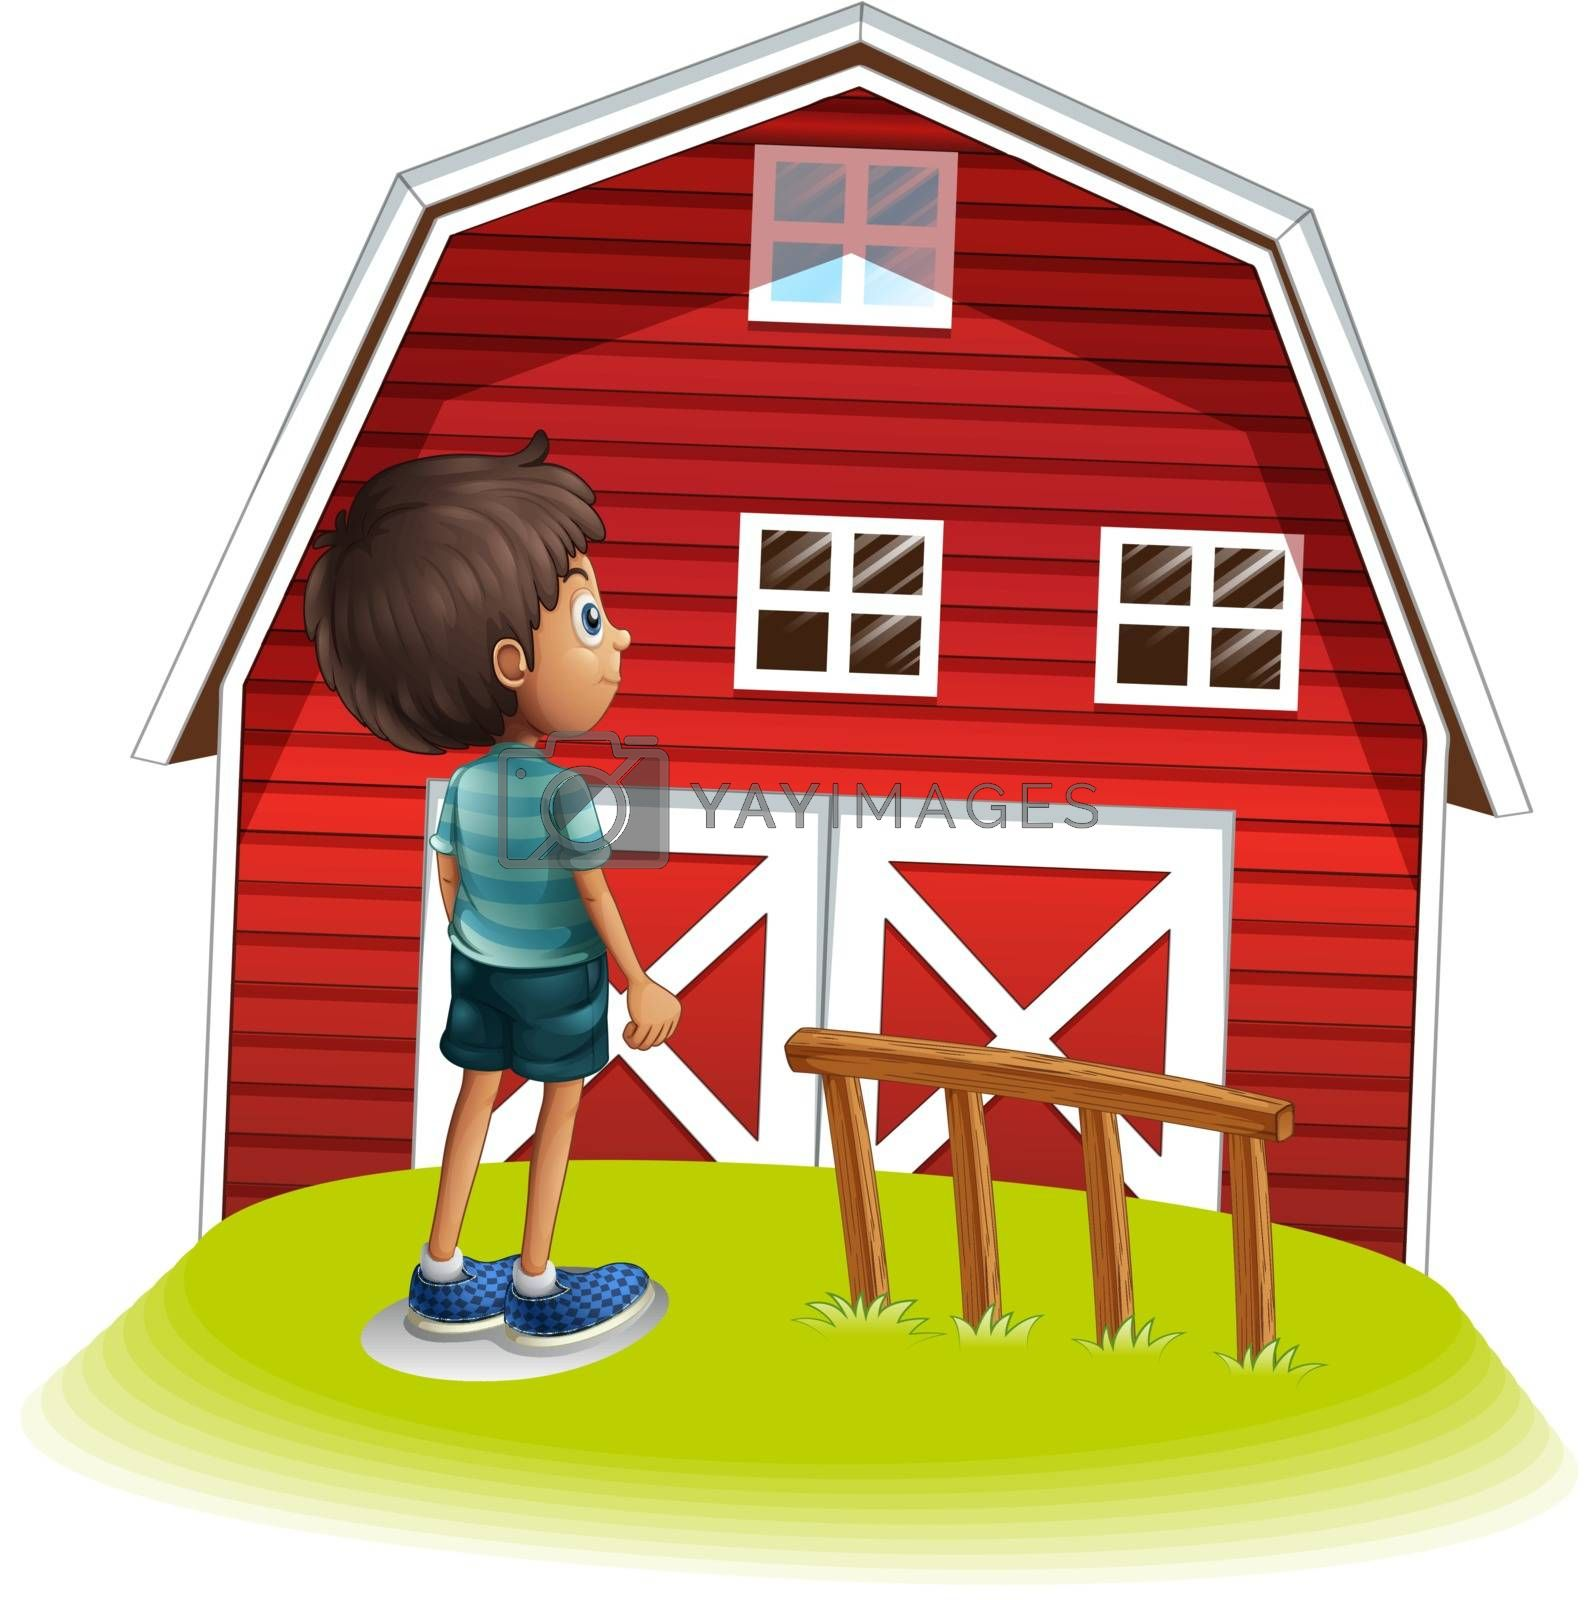 Illustration of a boy standing in front of the red farmhouse on a white background